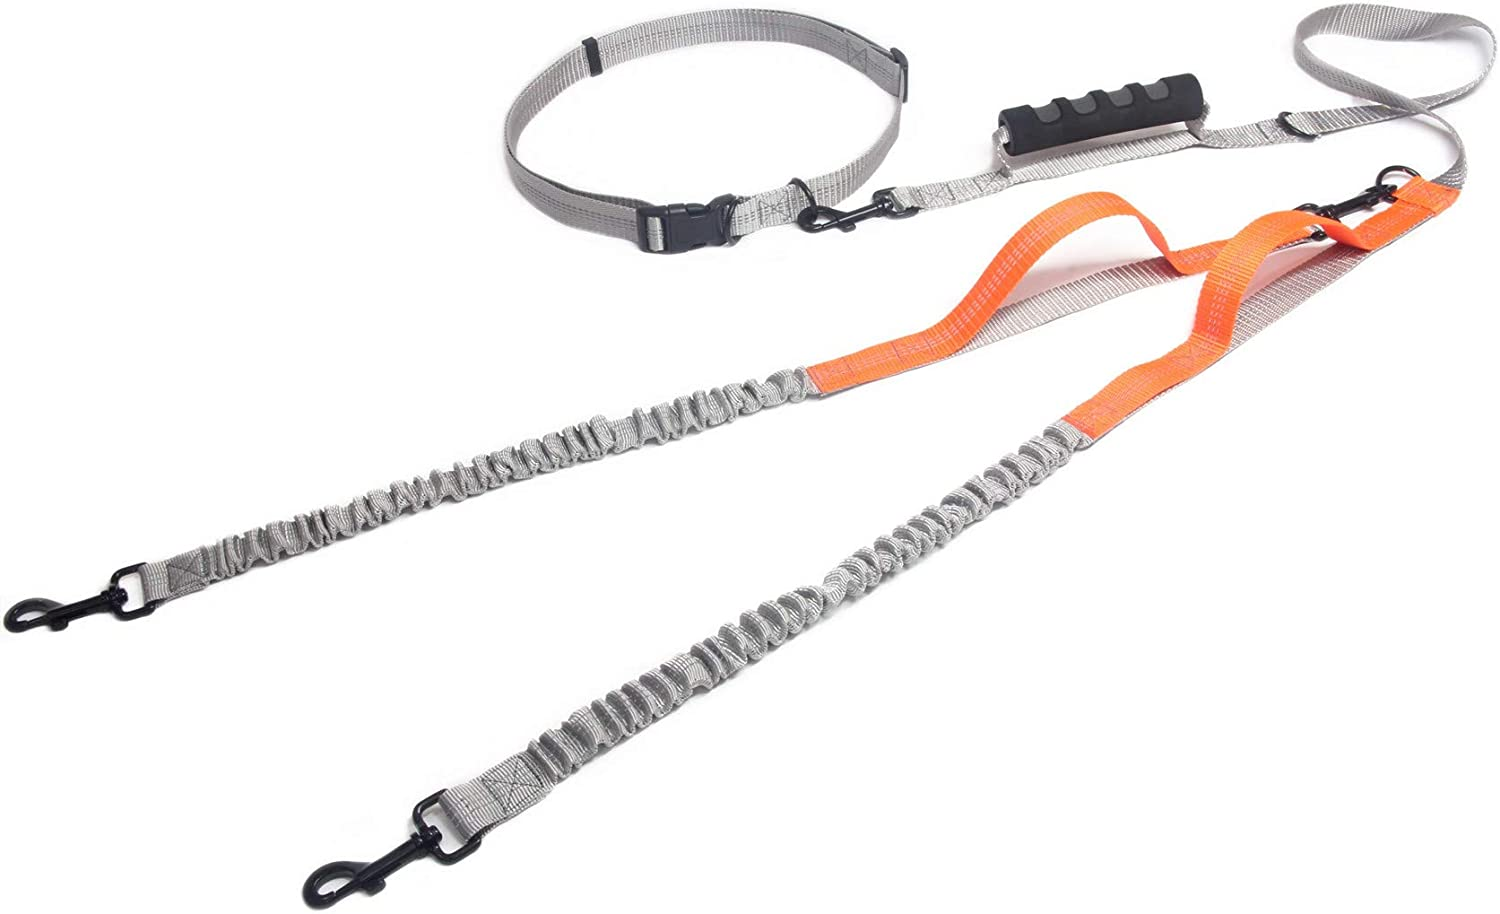 Maxpower Planet Hands Free Dog Leash with Double Handle and an Extra Detachable Bungee Leash for Running with 2 Dogs